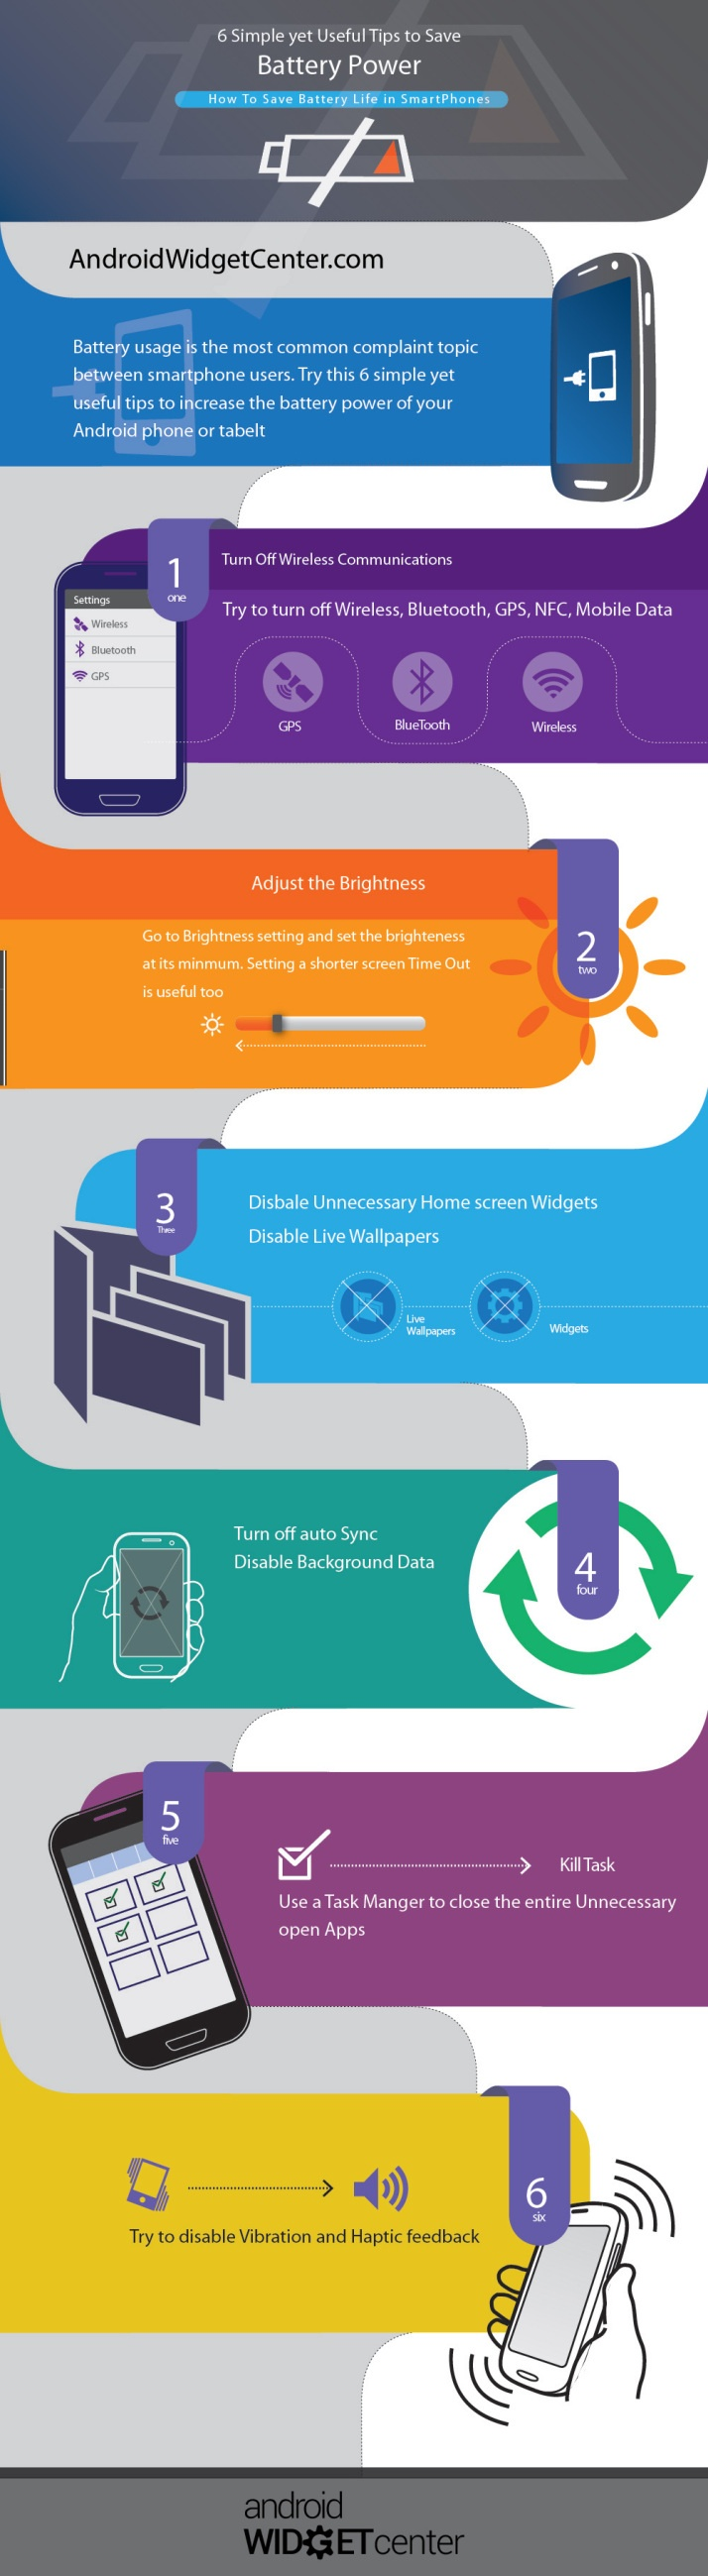 6 Simple yet useful tips to save Battery Power #infografia #infographic